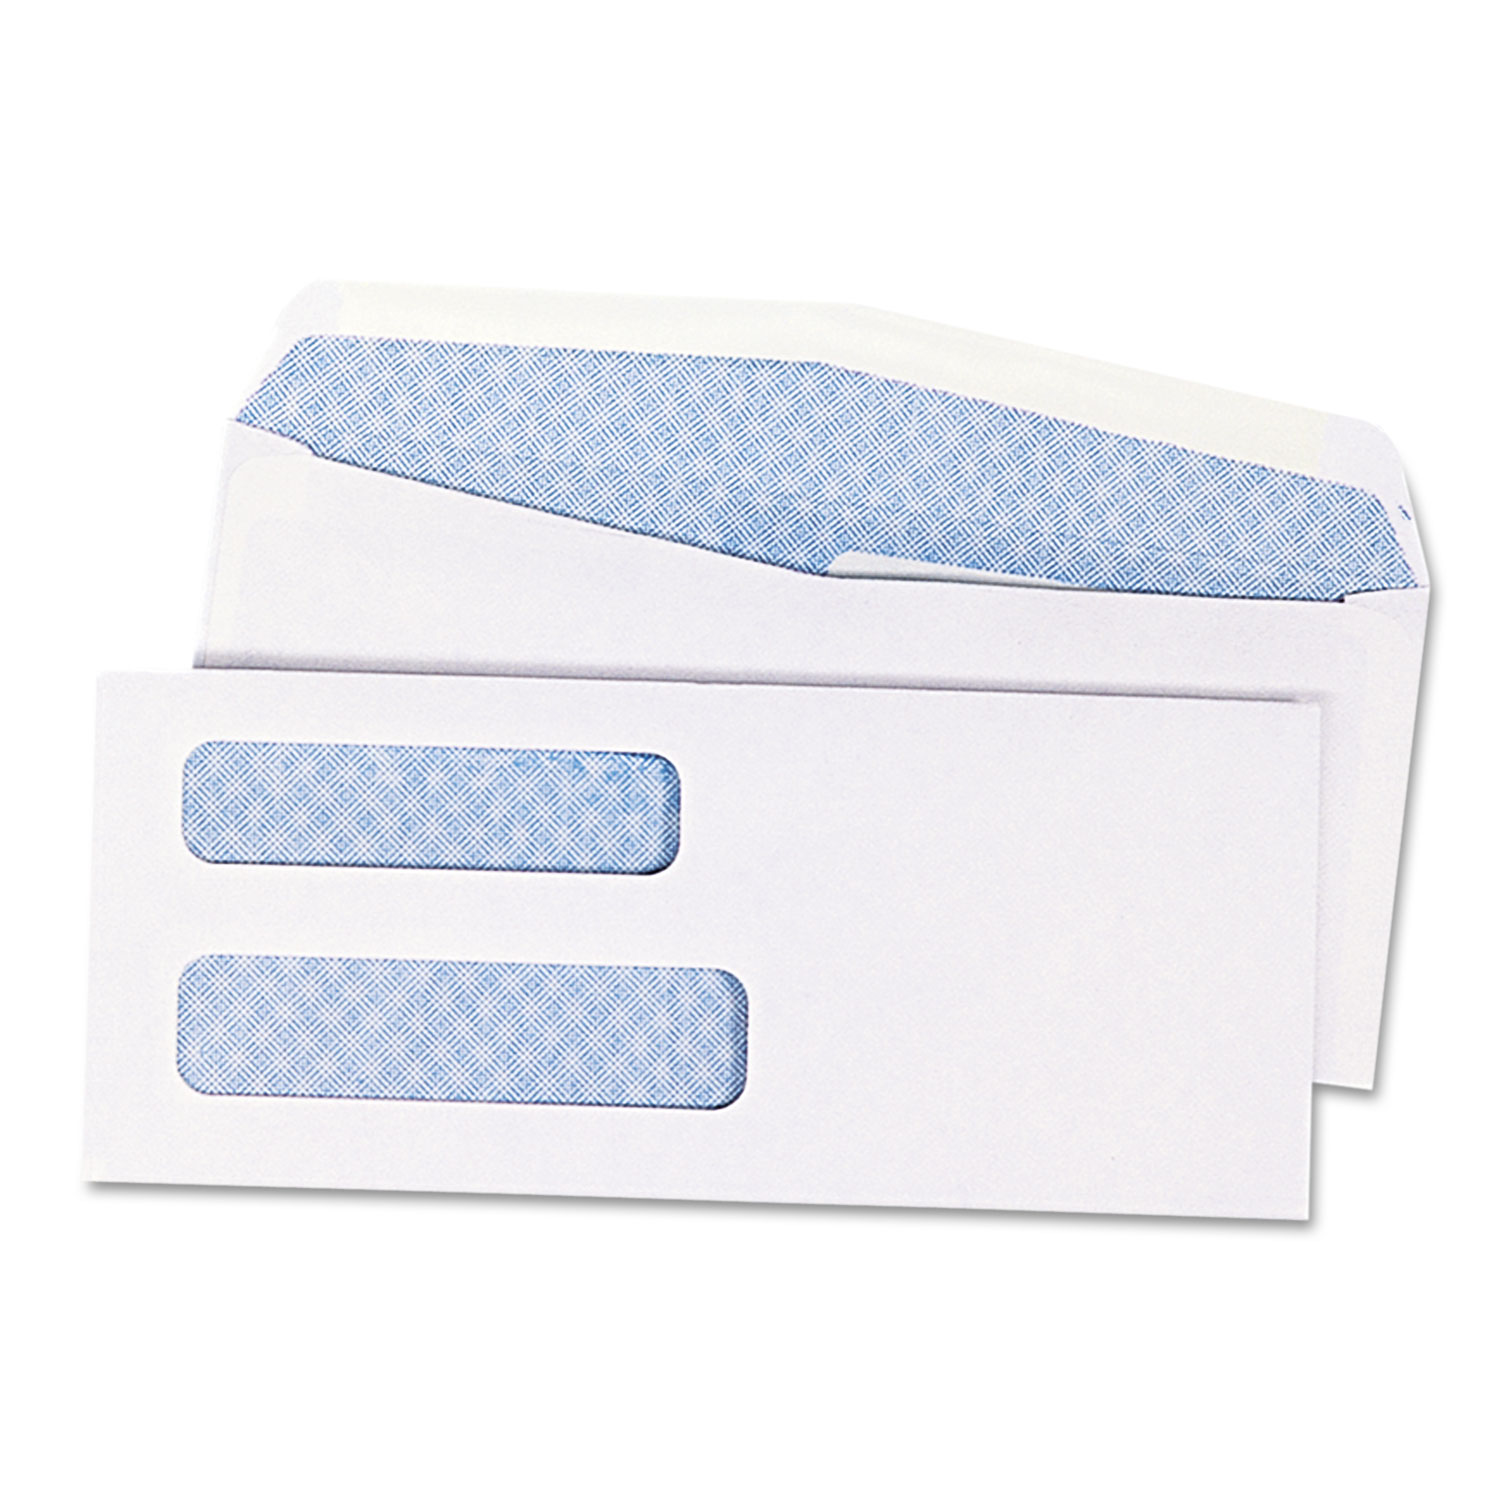 2-Window Security Tinted Check Envelope, #8 5/8, 3 5/8 x 8 5/8, White, 1000/Box